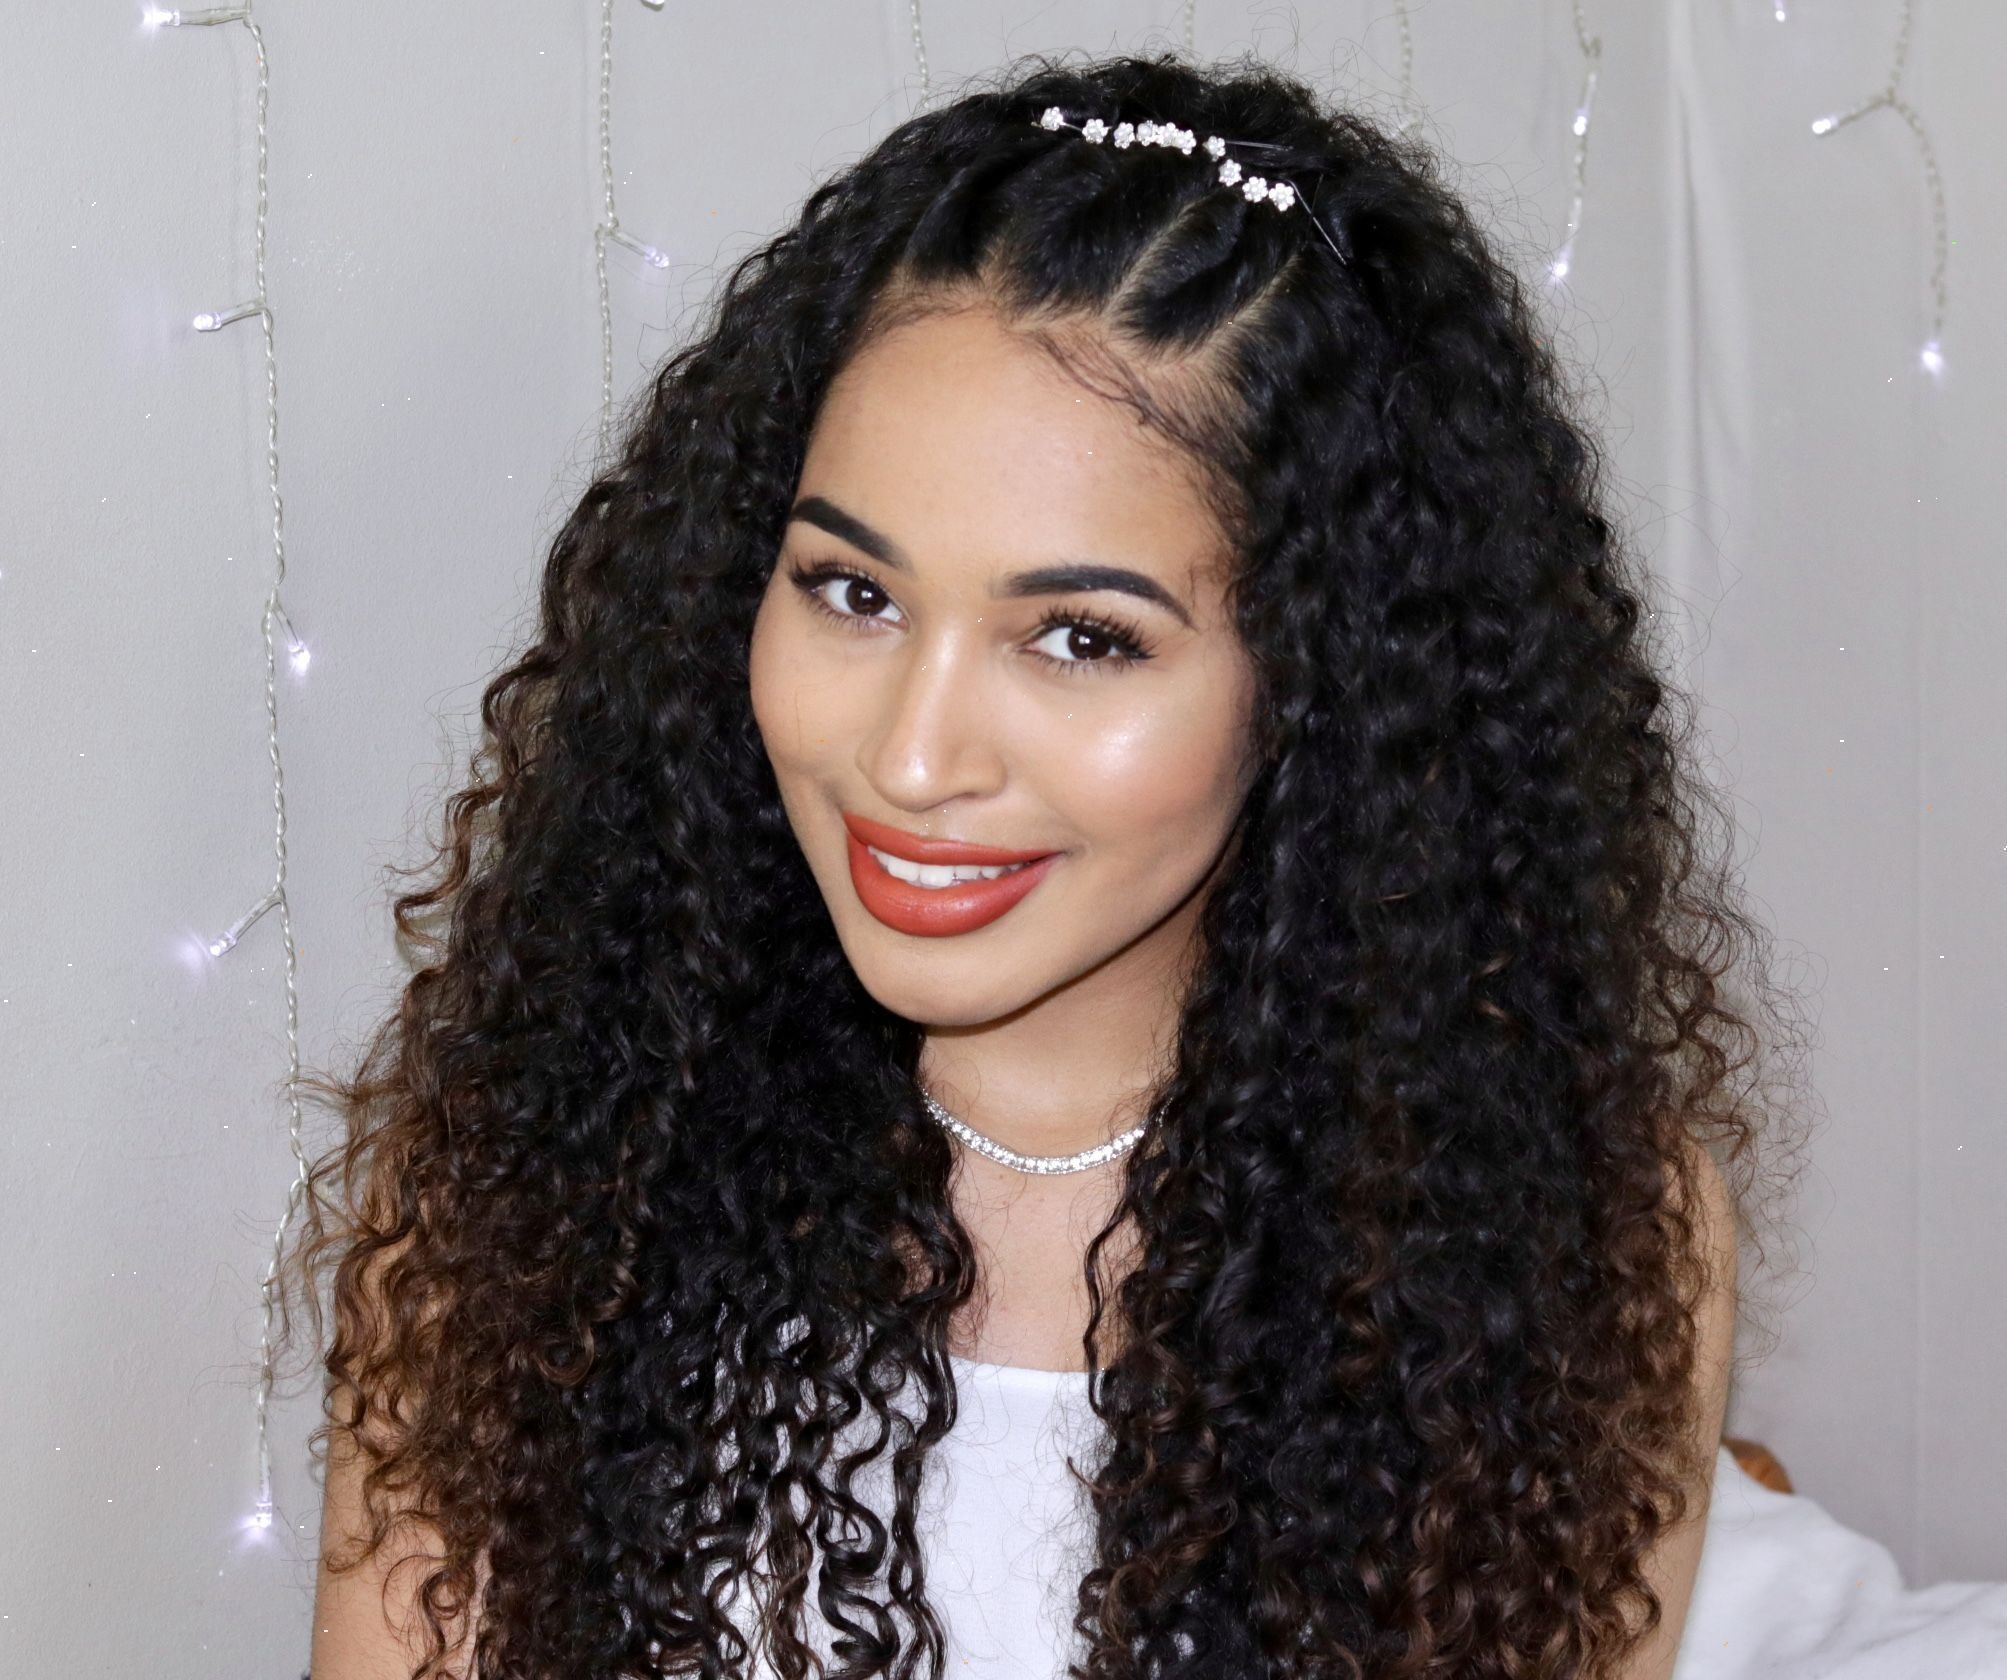 Boho Curly Hairstyles For Prom Weddings Graduation Parties Beautiful Natural Hairstyles By Lana Summer Curly Prom Hair Hair Styles Curly Hair Styles